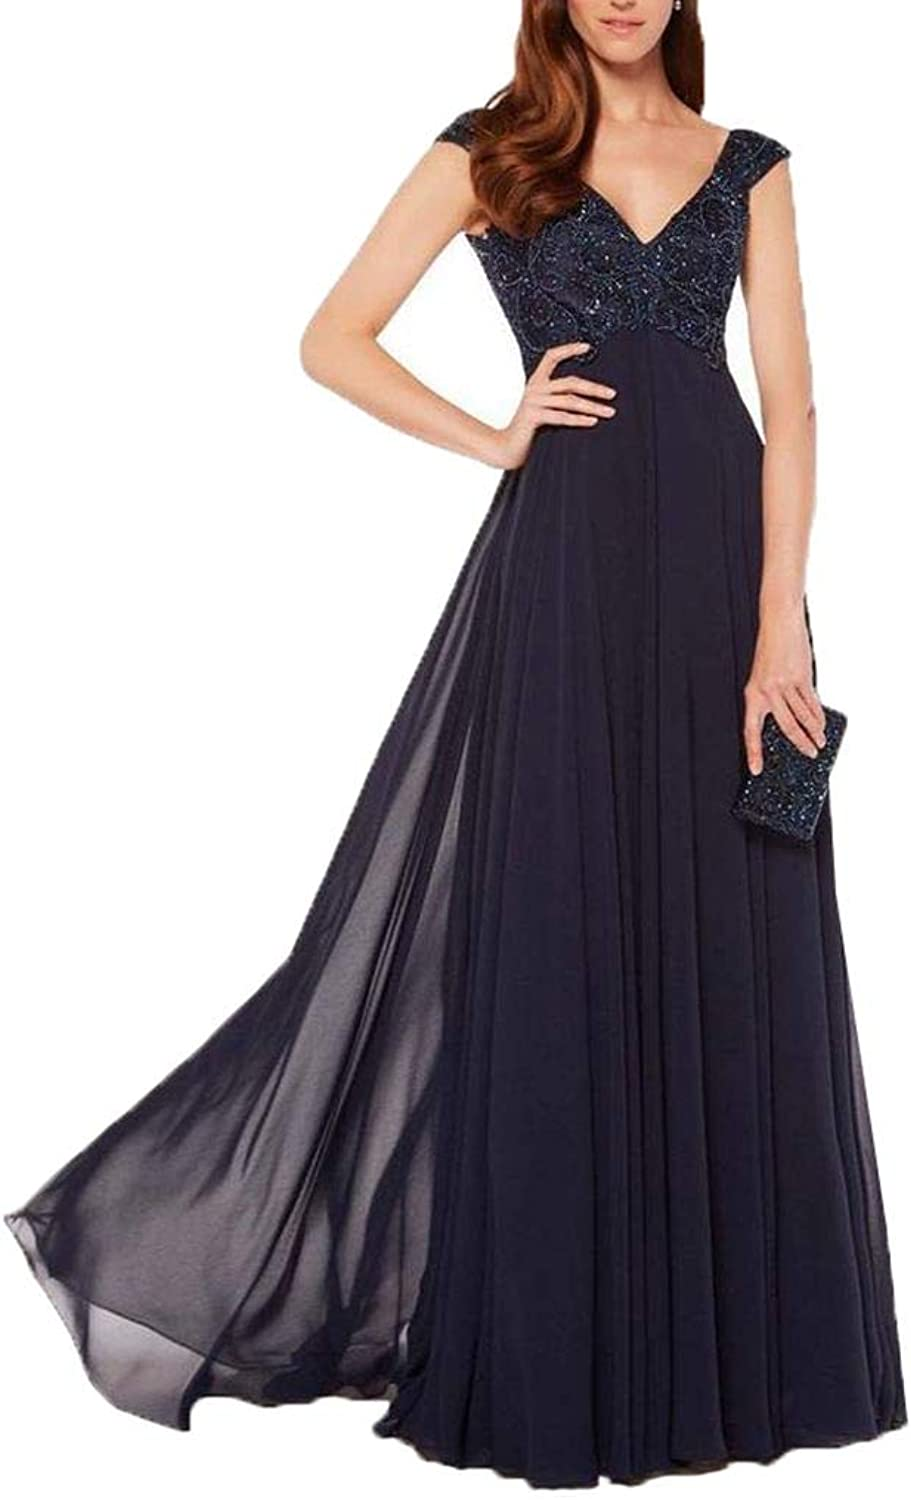 Aishanglina Women's VNeck Evening Party Cocktail Dress with Embroidery Pearls Beading for Special Formal Occasions